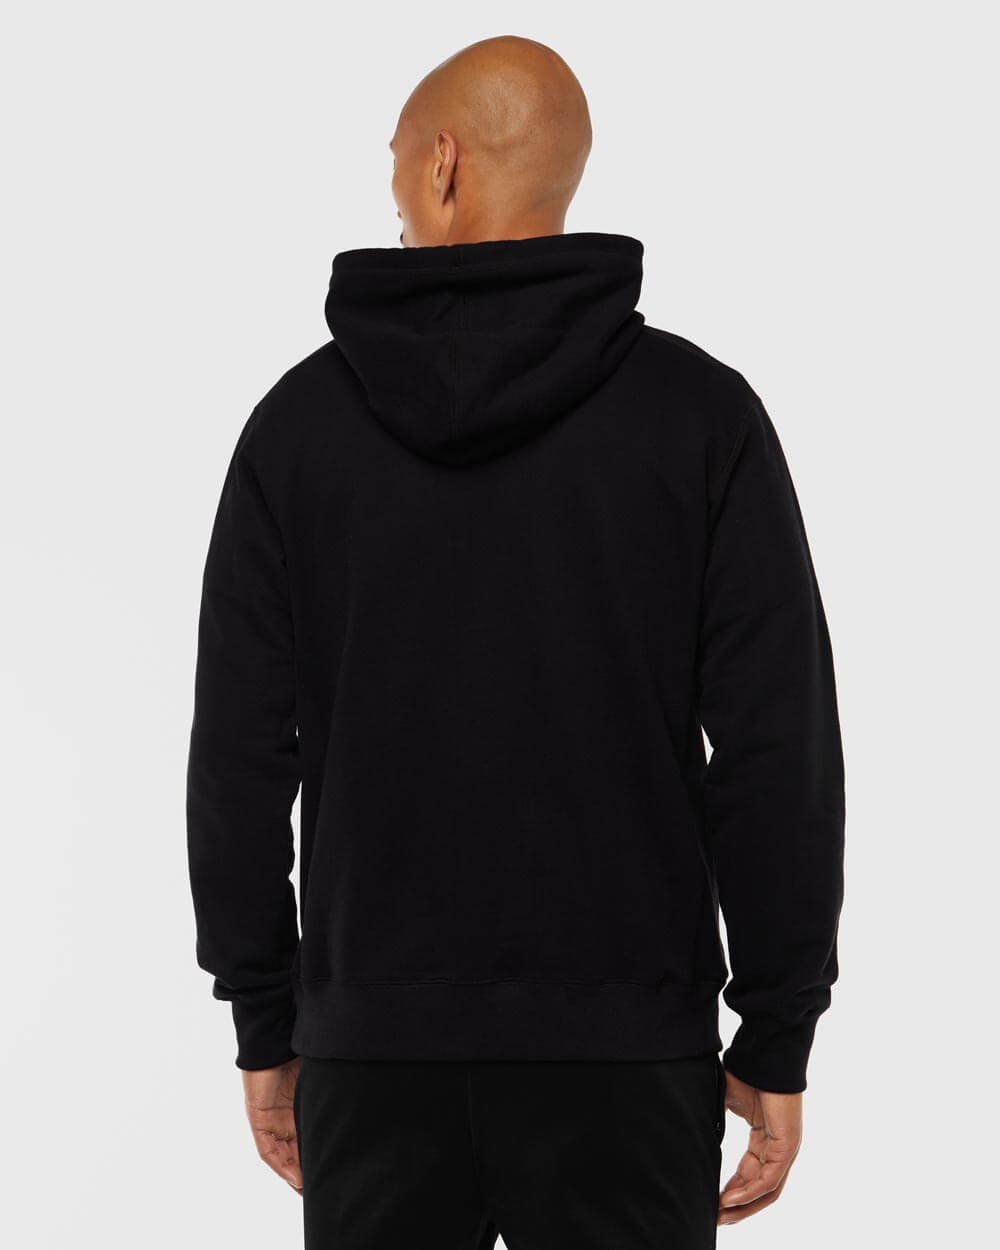 MID-WEIGHT FRENCH TERRY HOODIE - BLACK